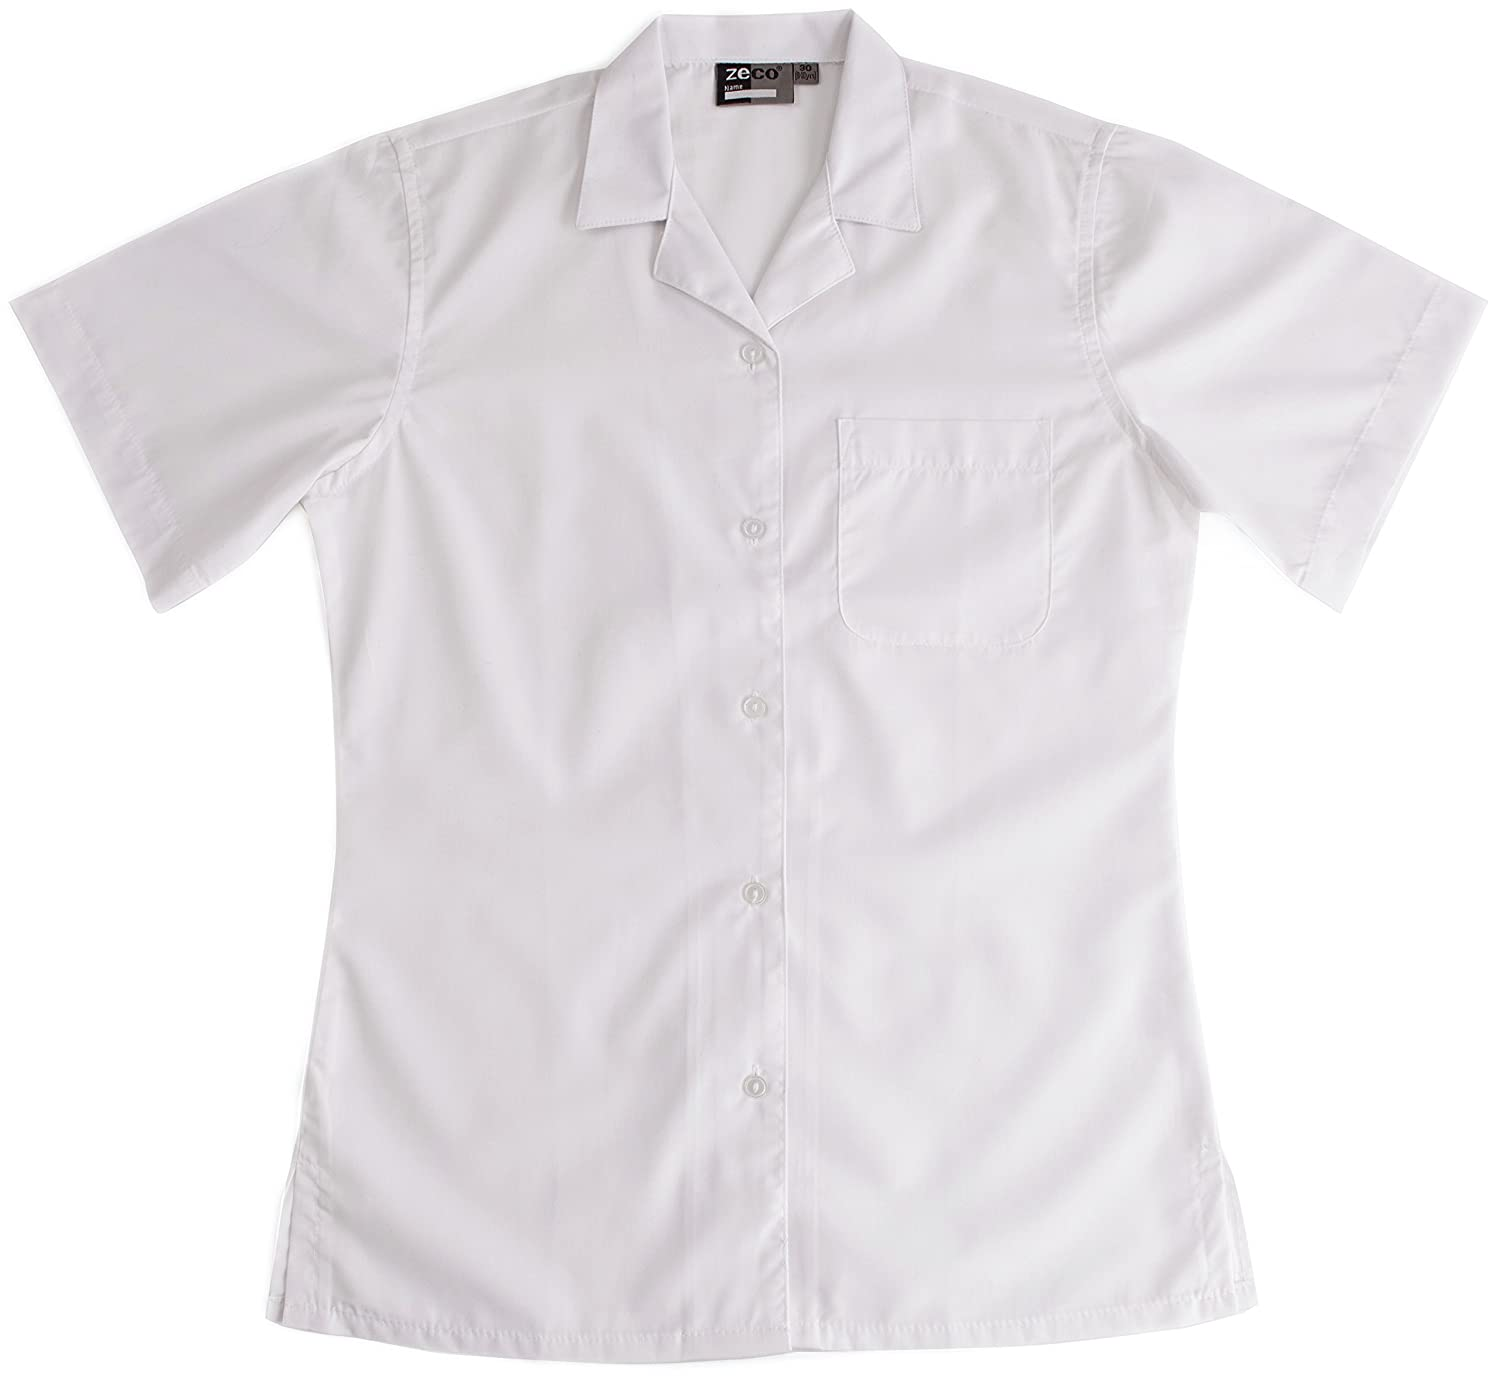 Ladies Girls School Uniform White Blue Short Sleeve Rever Collar Blouse  Shirt Chest 24 - 42: Amazon.co.uk: Clothing